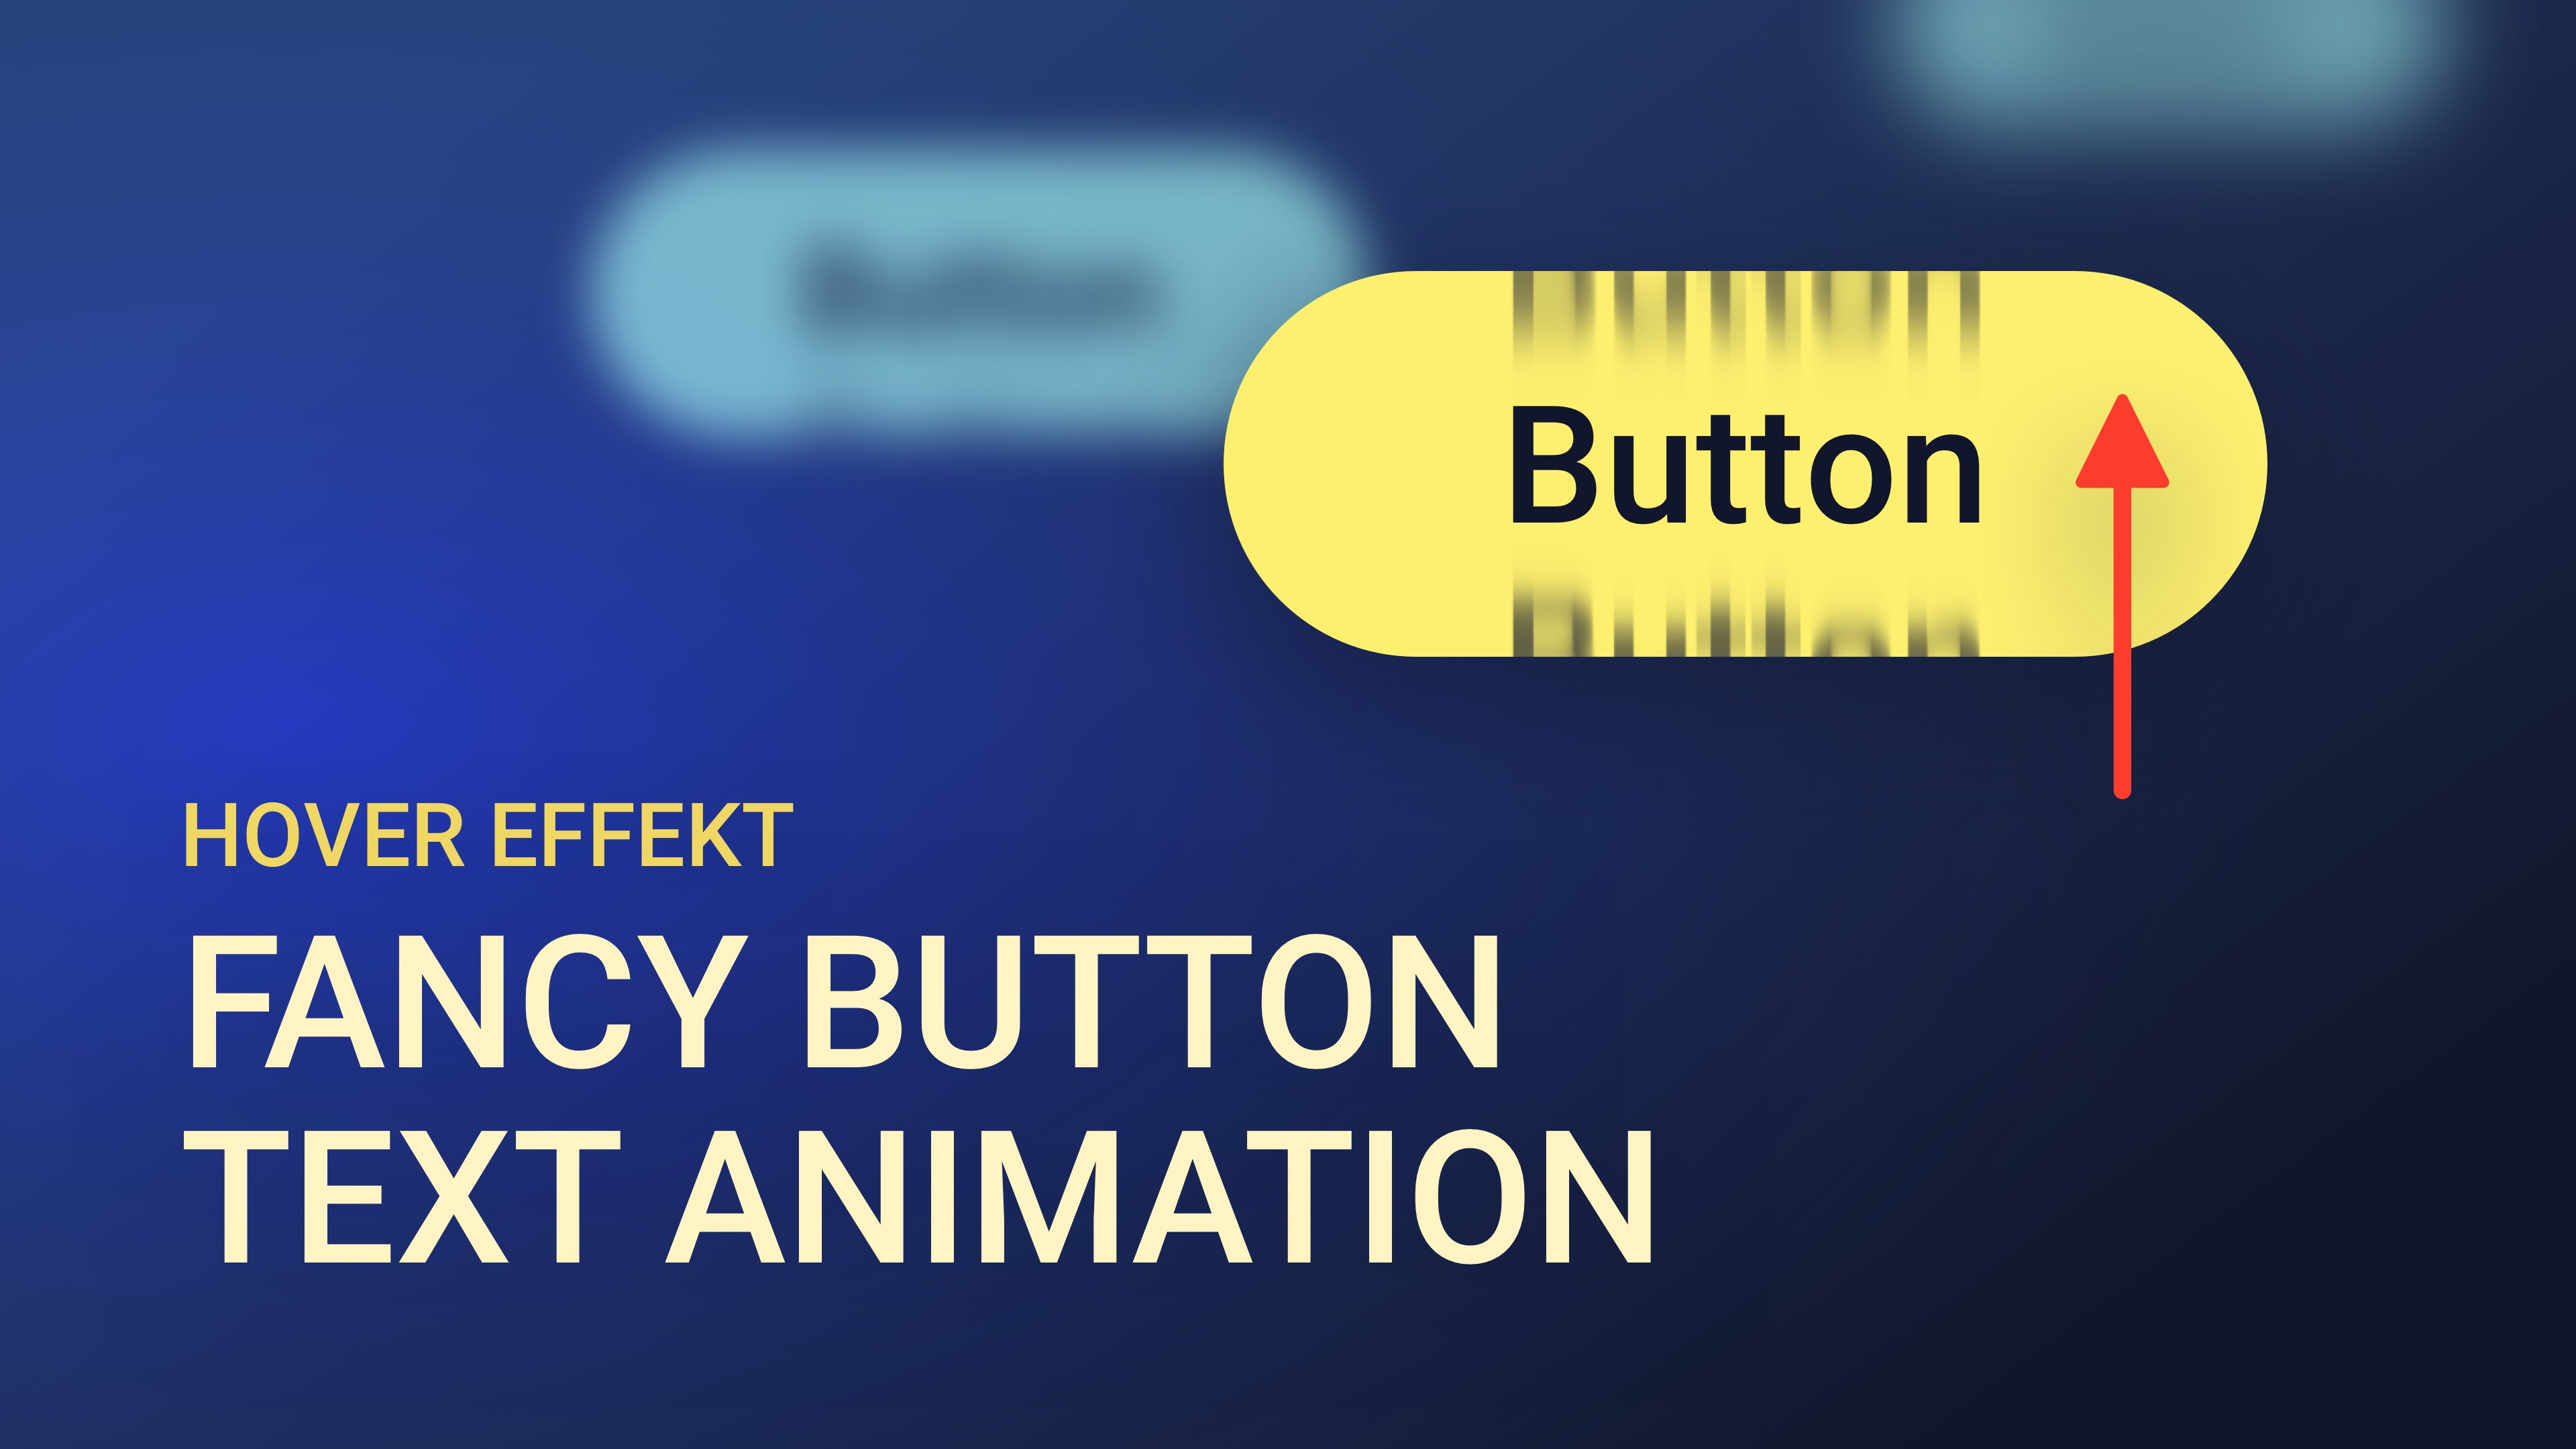 Fancy Button Text Animation